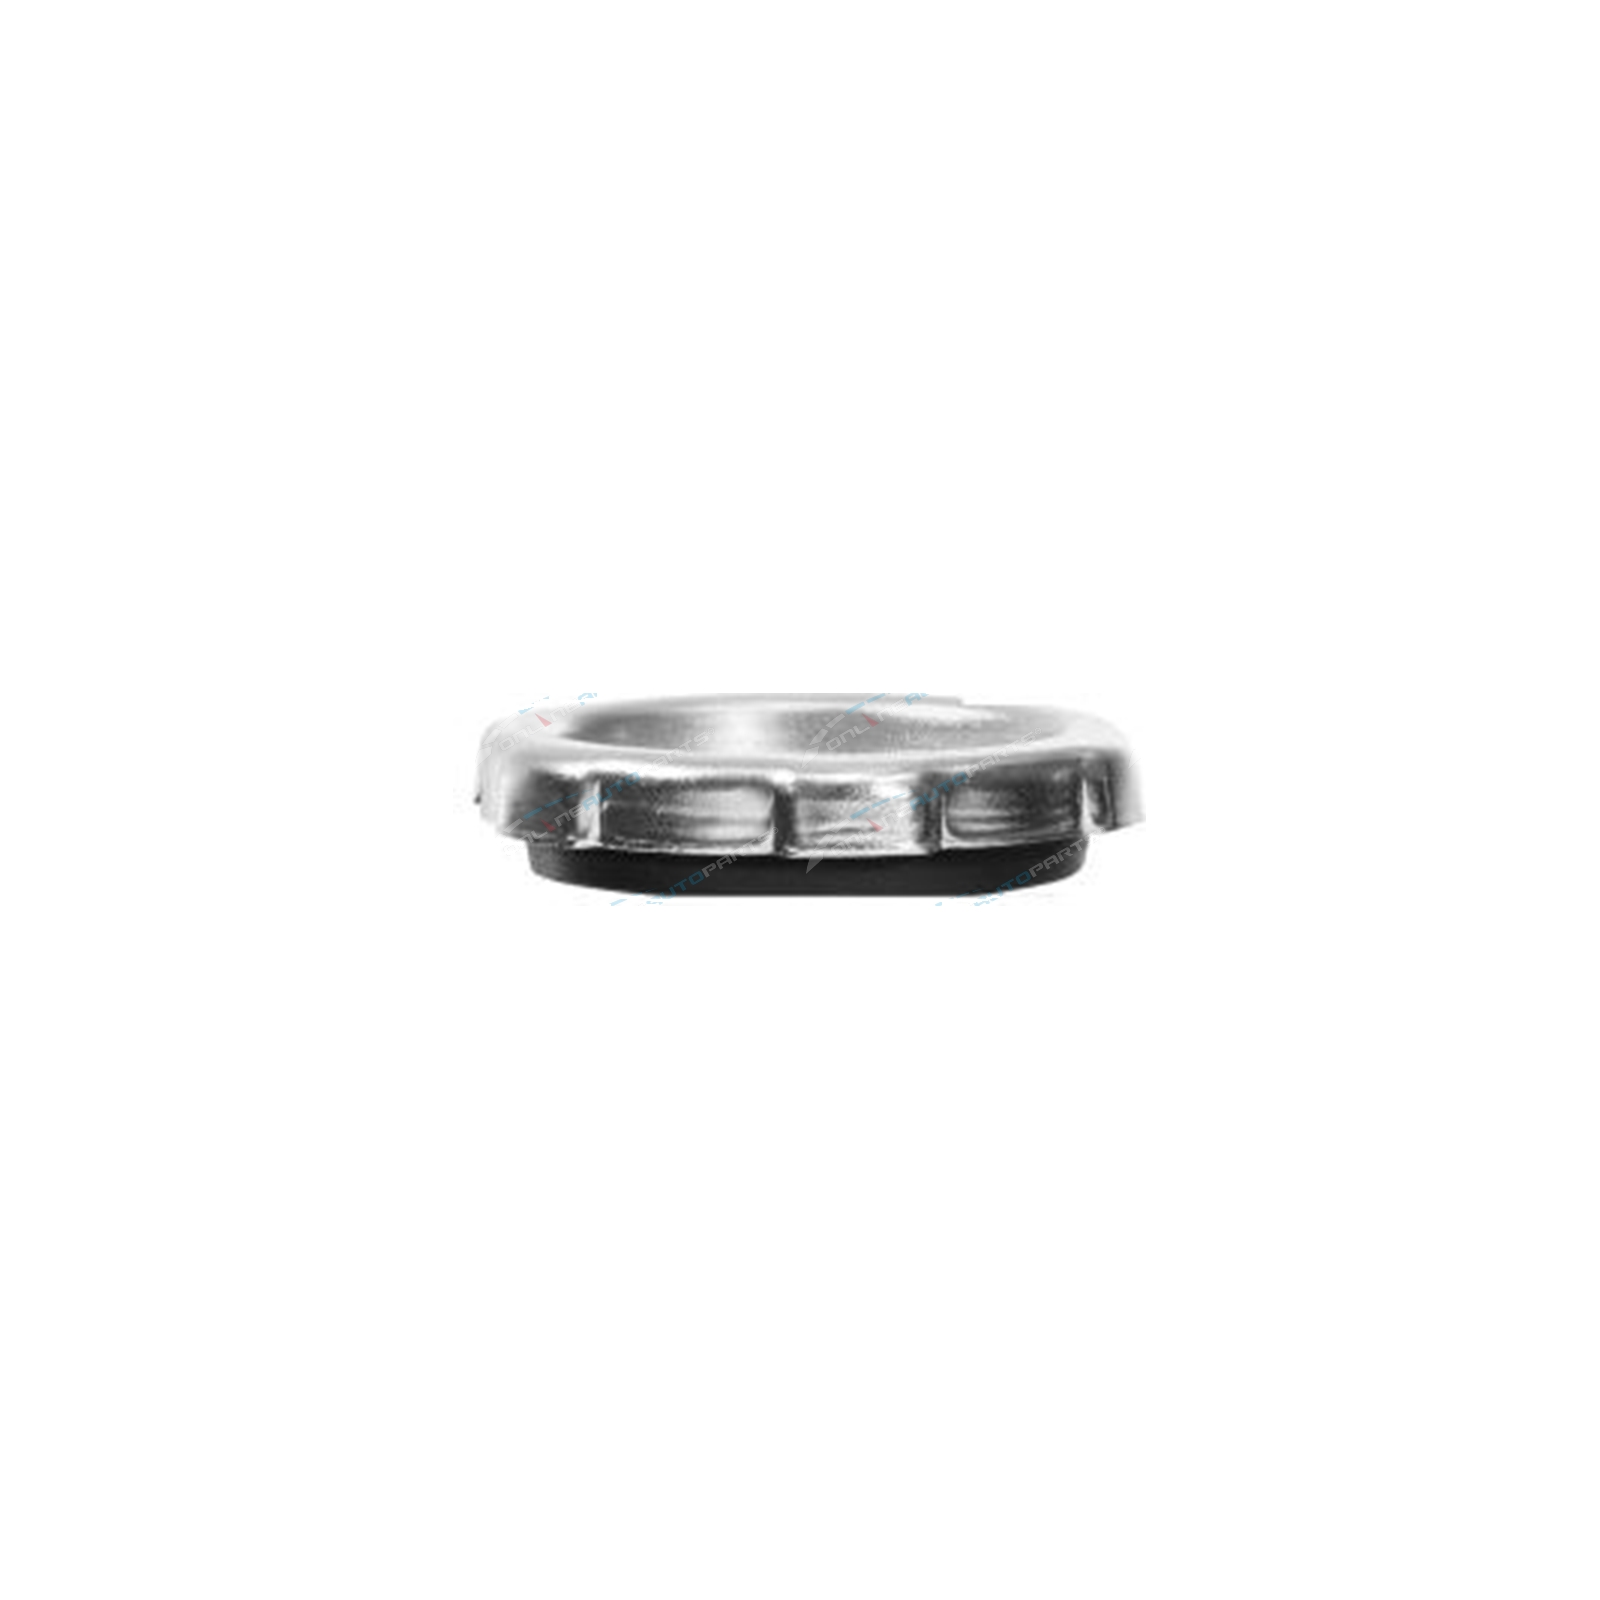 TOC524 - Engine Oil Cap Metal bayonet - Tridon